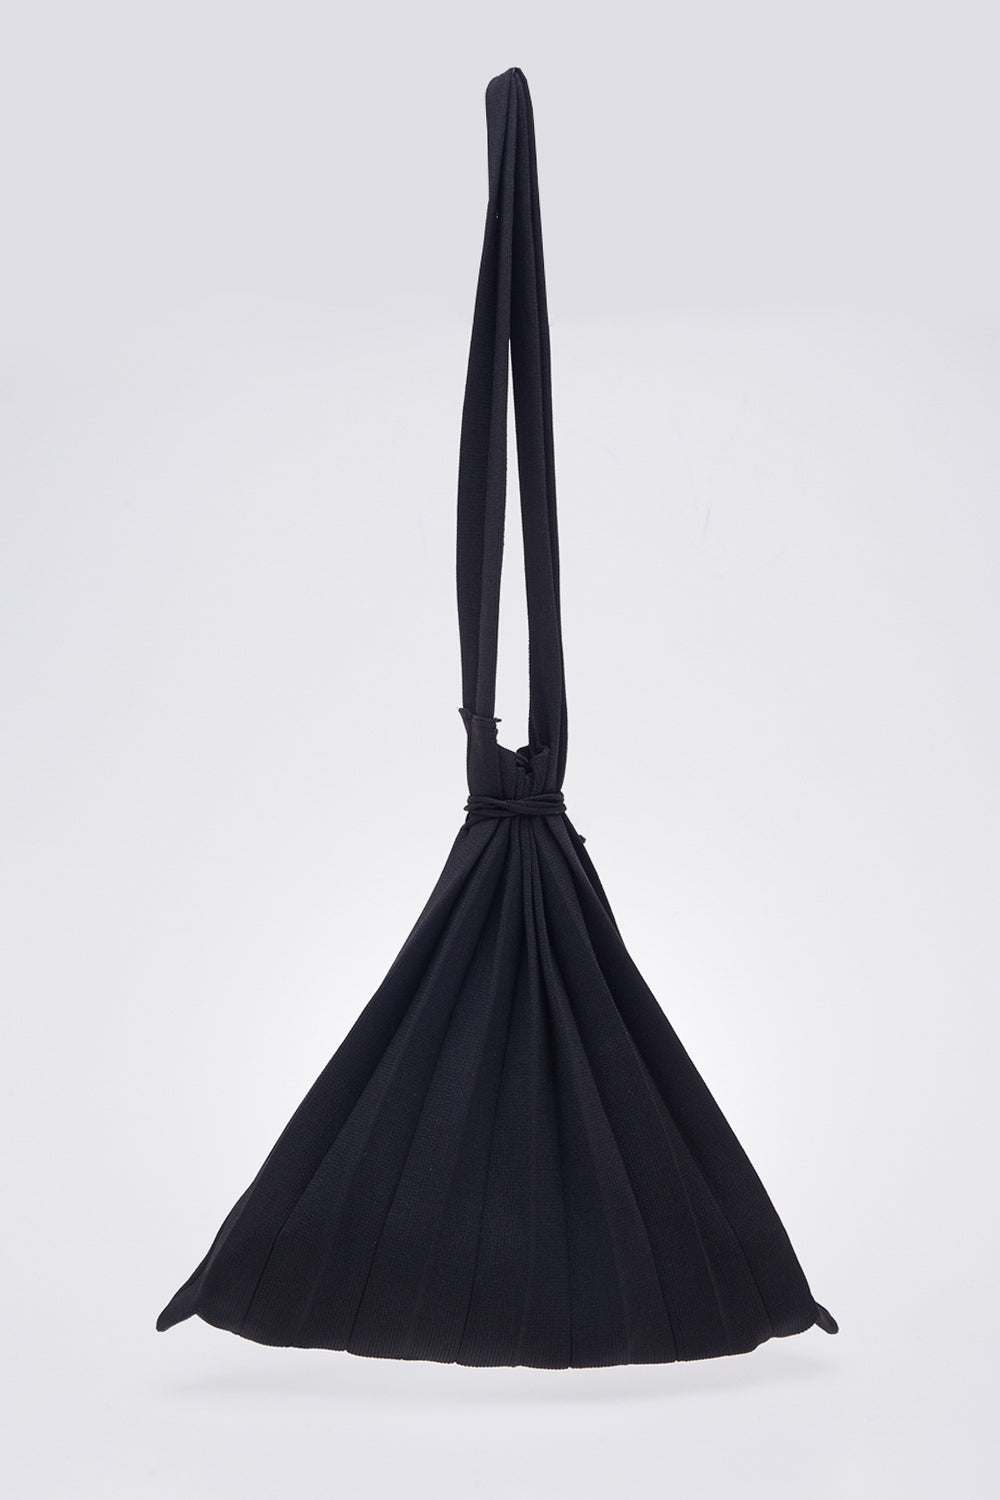 Plise Bag in Black